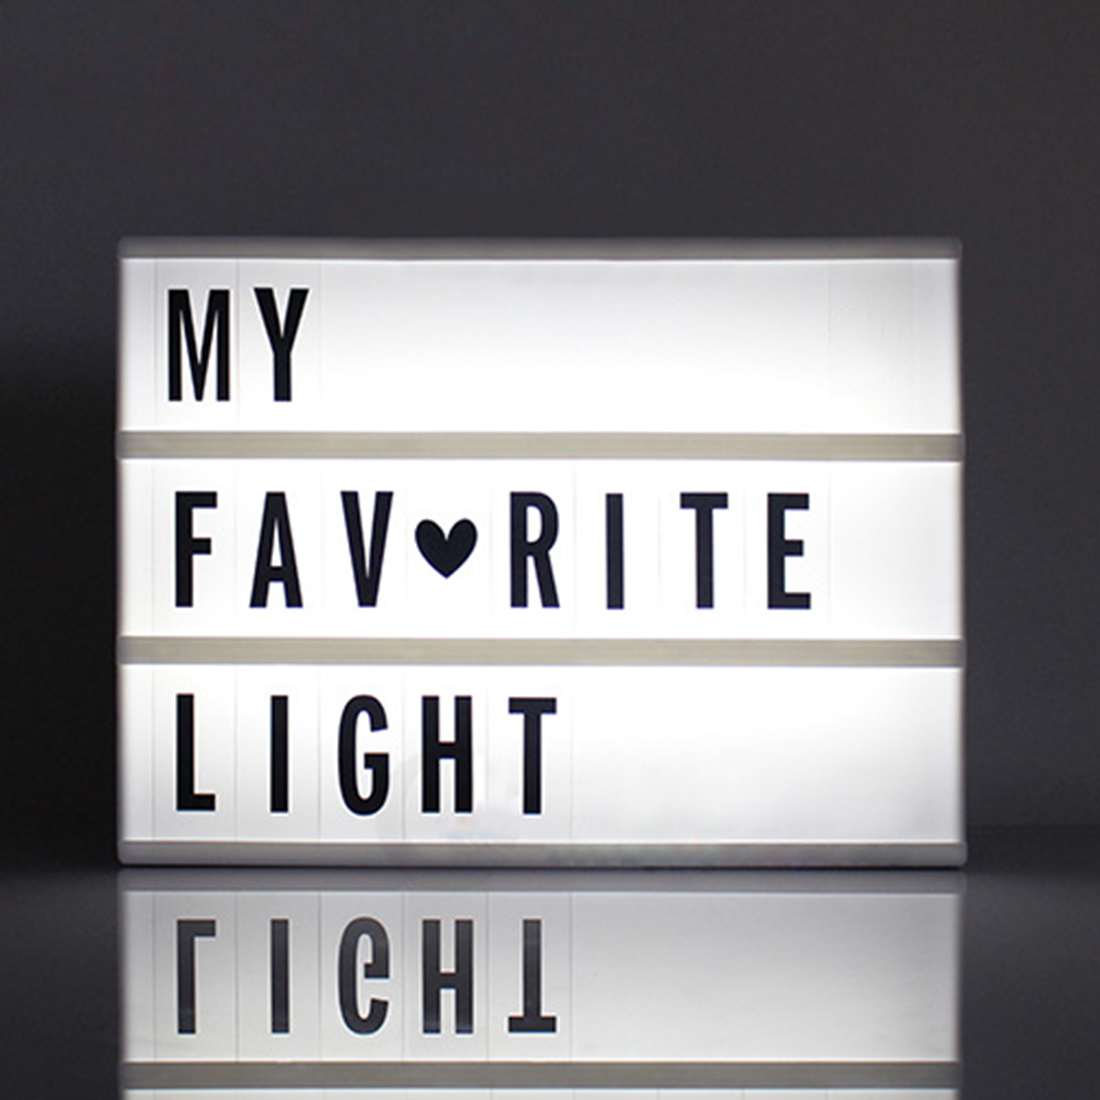 New A6 Cinematic LED Porch Light Up Sign Box Lightbox Message Board Cinema LED Letter Symbol Home Party Wedding Lamp Decor  1pc